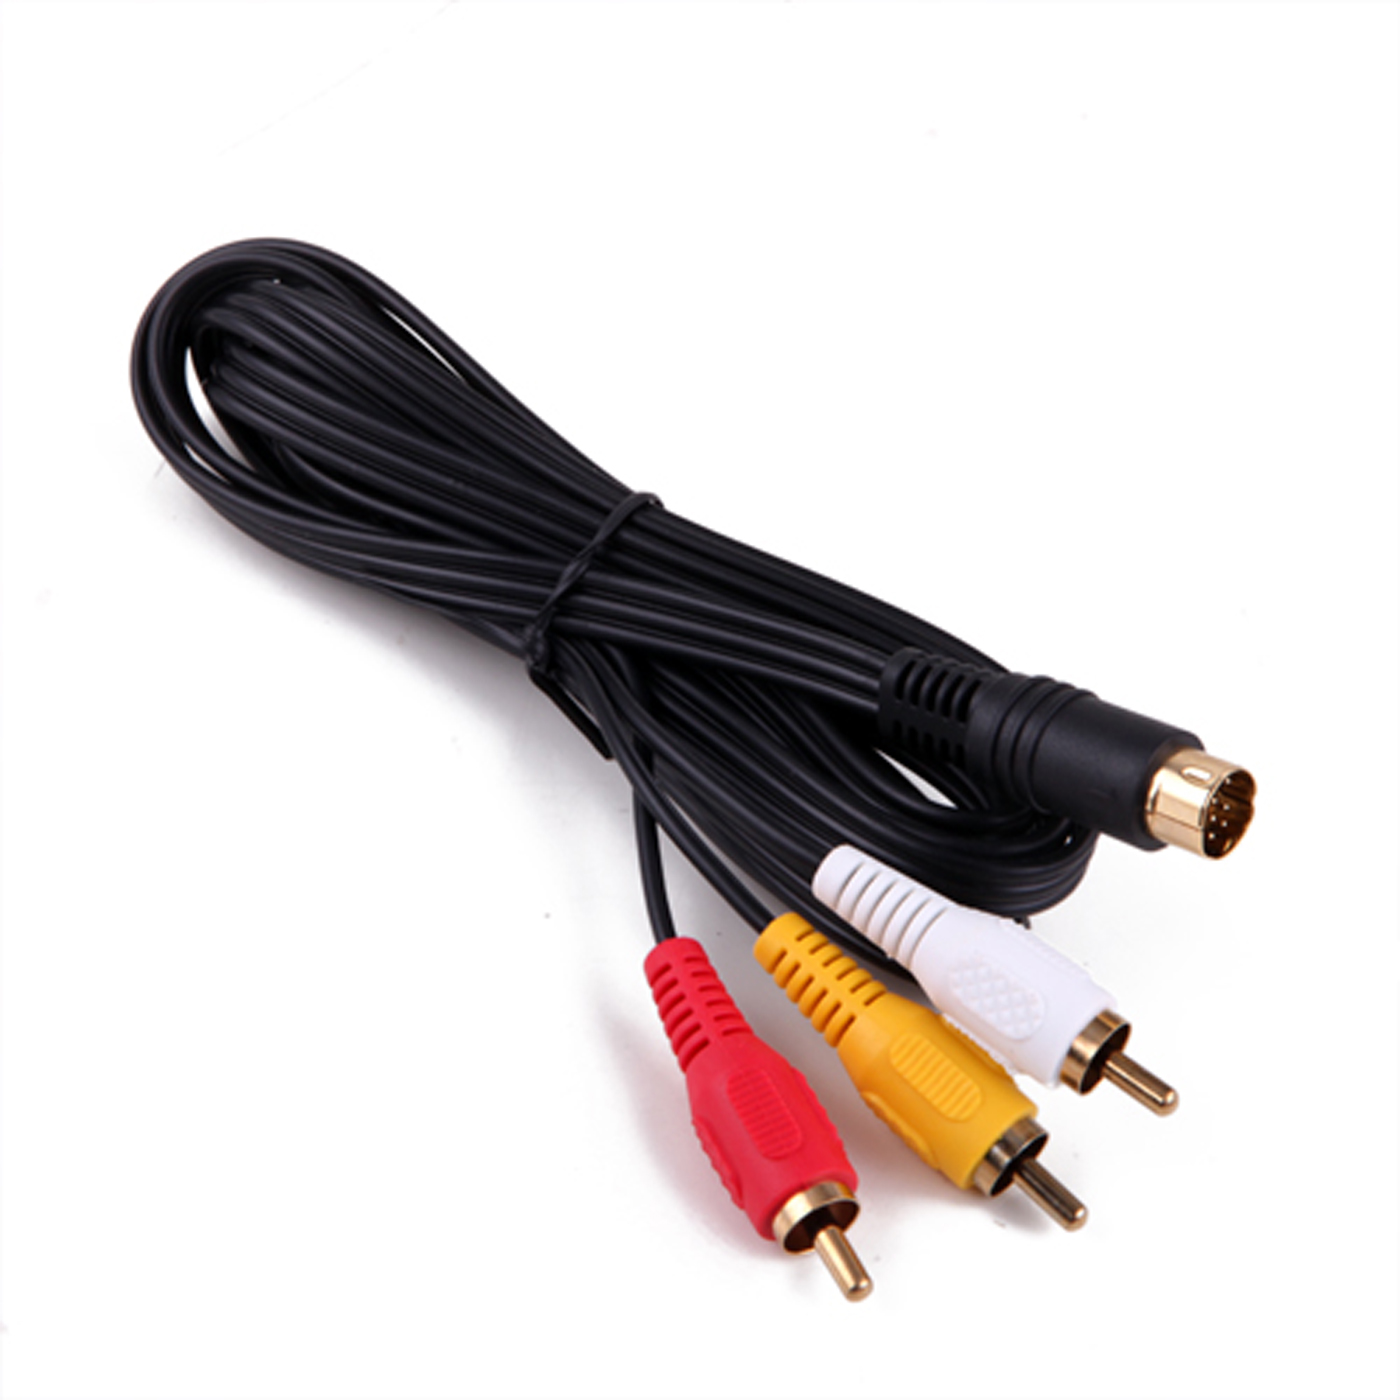 HDE Sega Saturn Gold Plated AV Audio Video Cable Cord TV Connector (6 Foot)